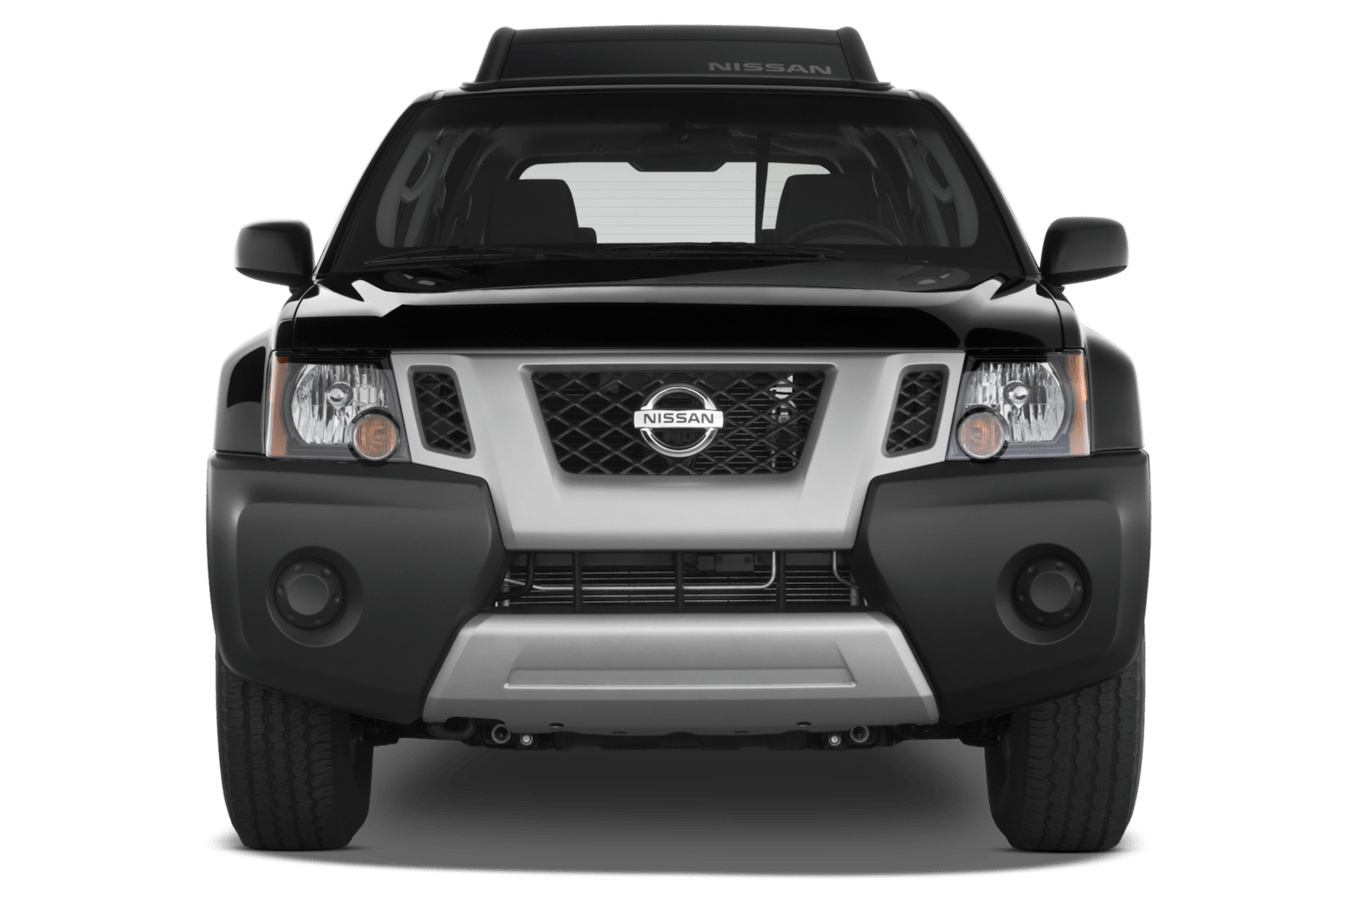 hight resolution of 2012 nissan xterra reviews and rating motor trend 15 29 2011 nissan frontier v6 engine diagram